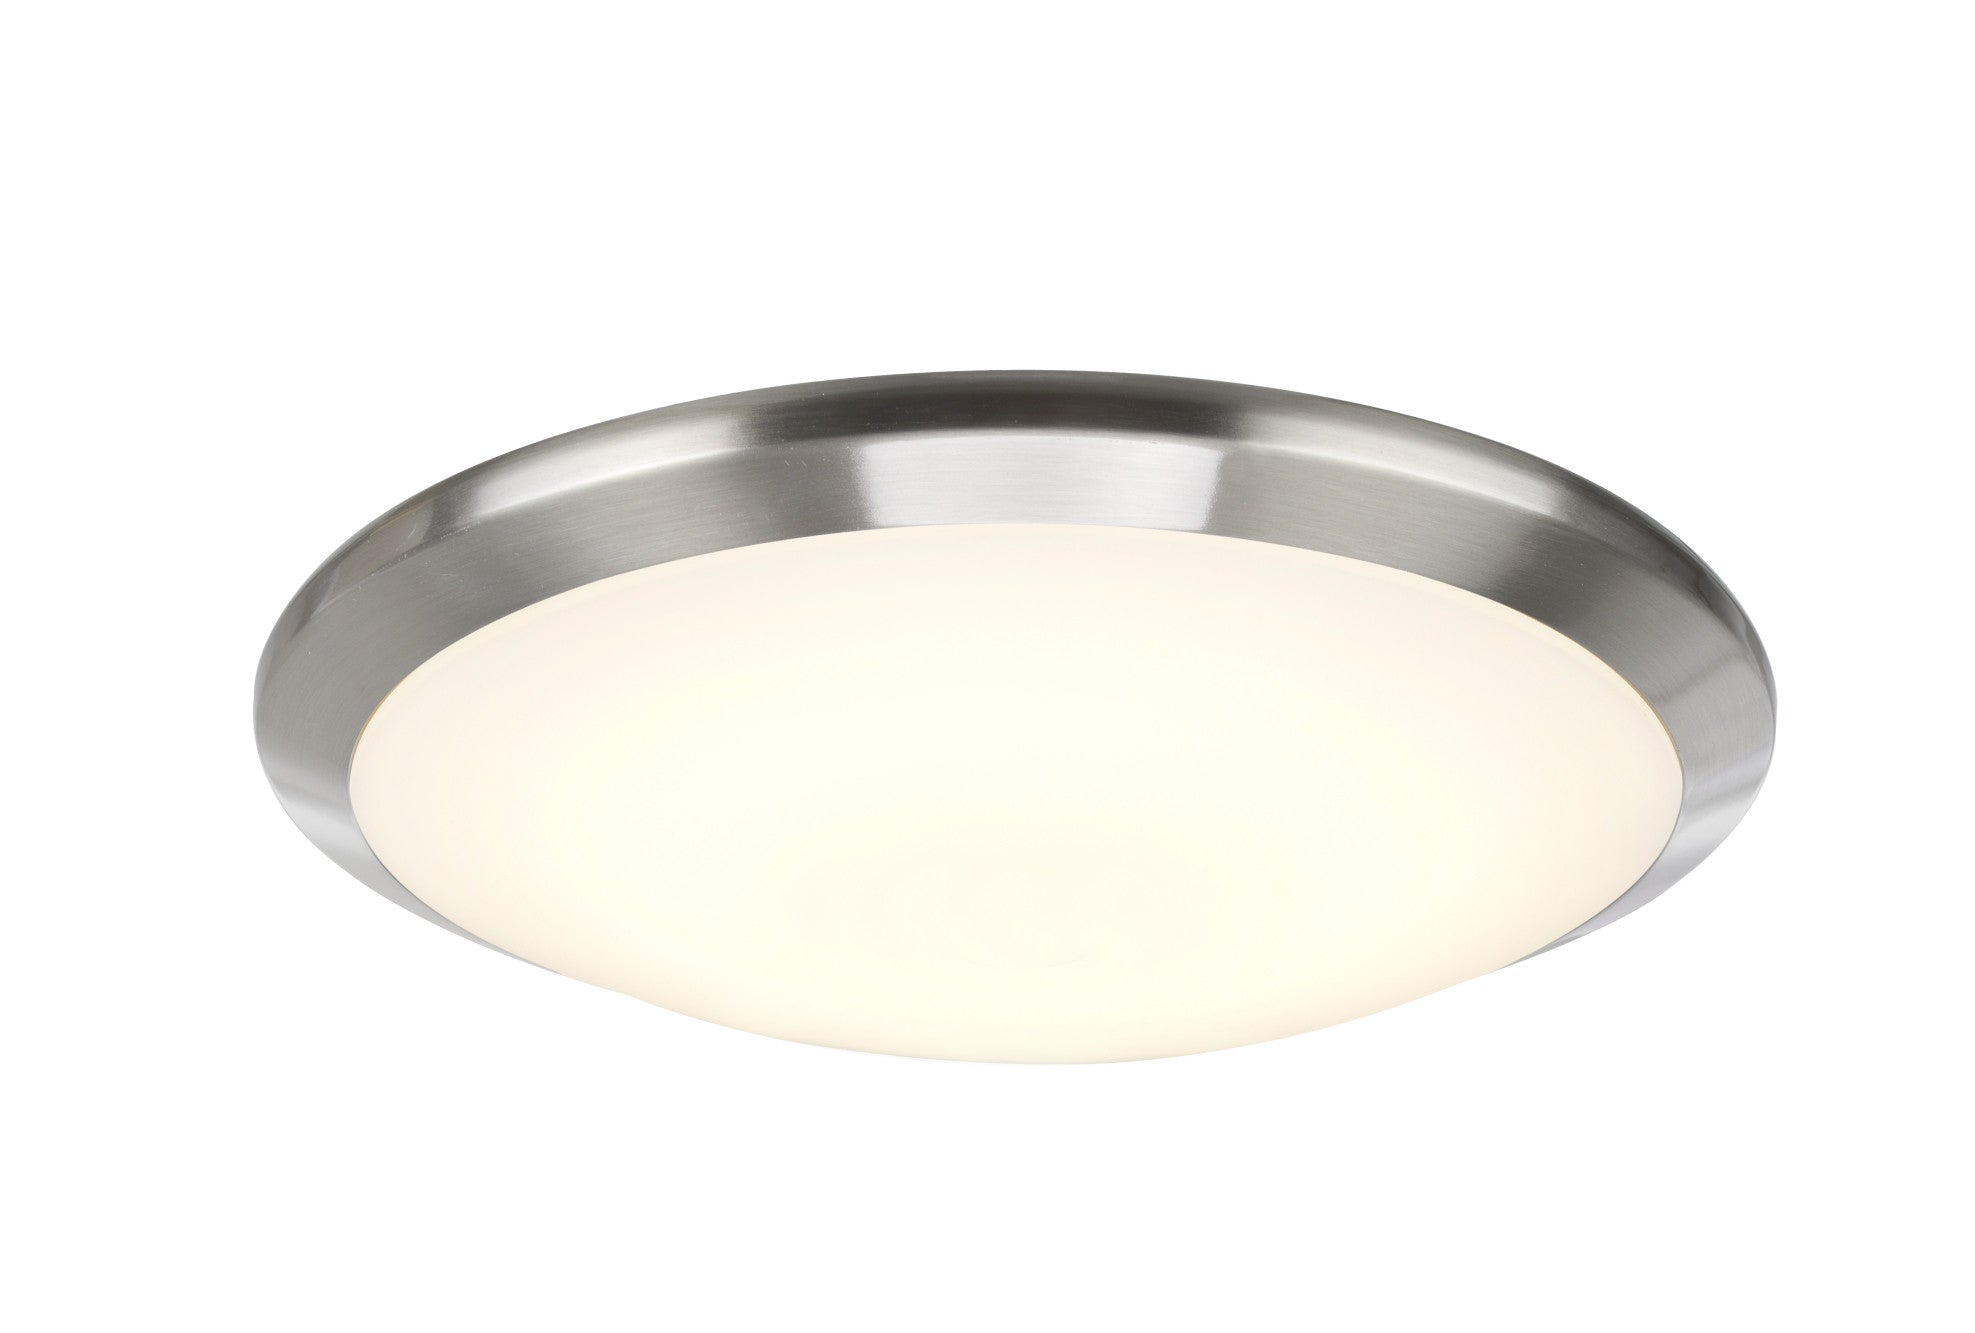 63003s 1 led small flush mount ceiling light fixture contemporary design satin